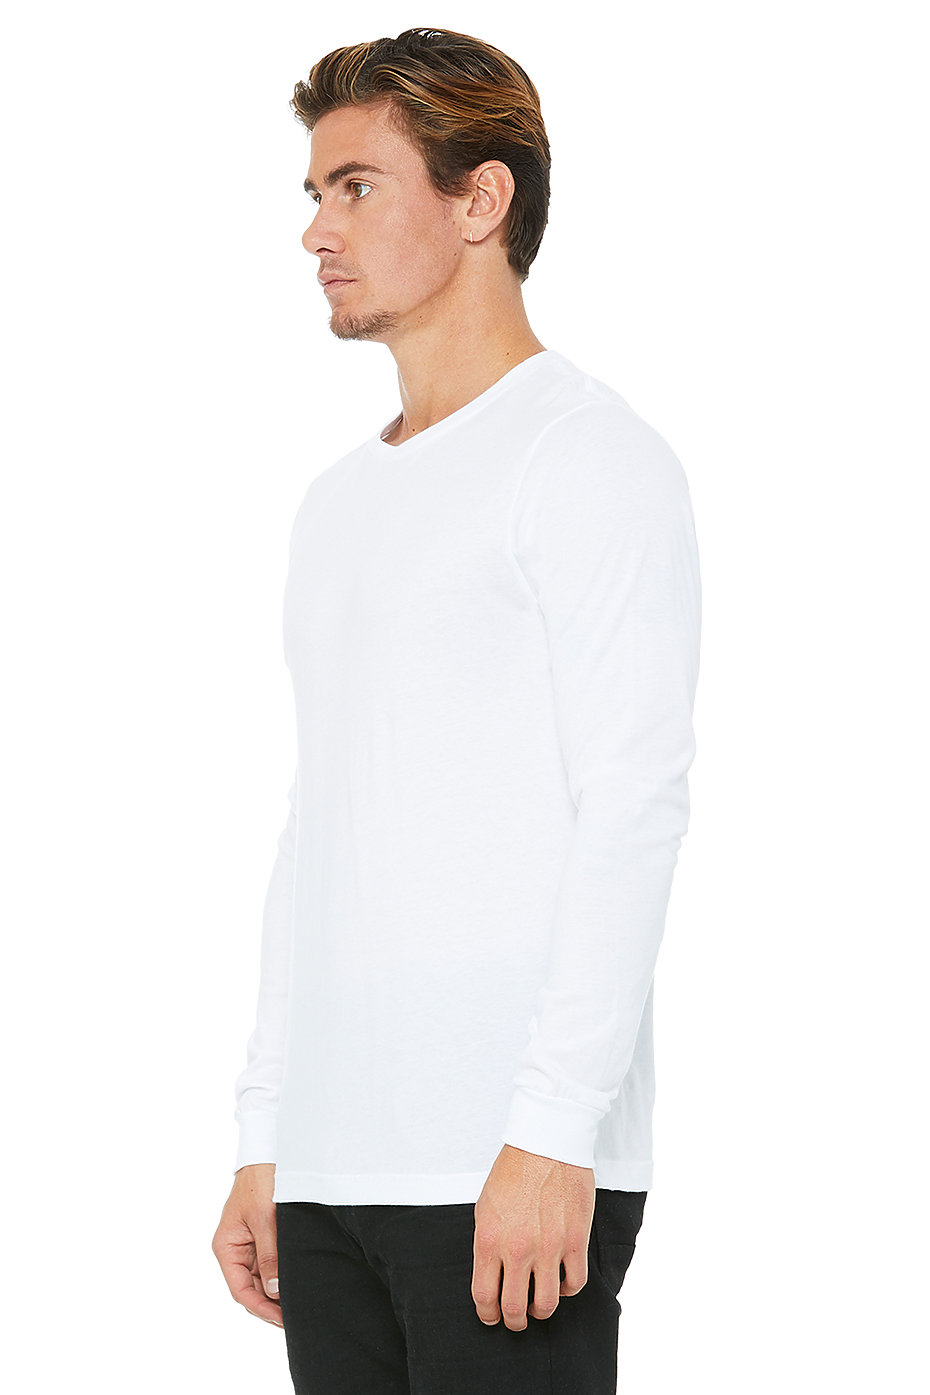 205ee0d47b876 Mens Long Sleeve T Shirts | Unisex Jersey T Shirt | Wholesale ...